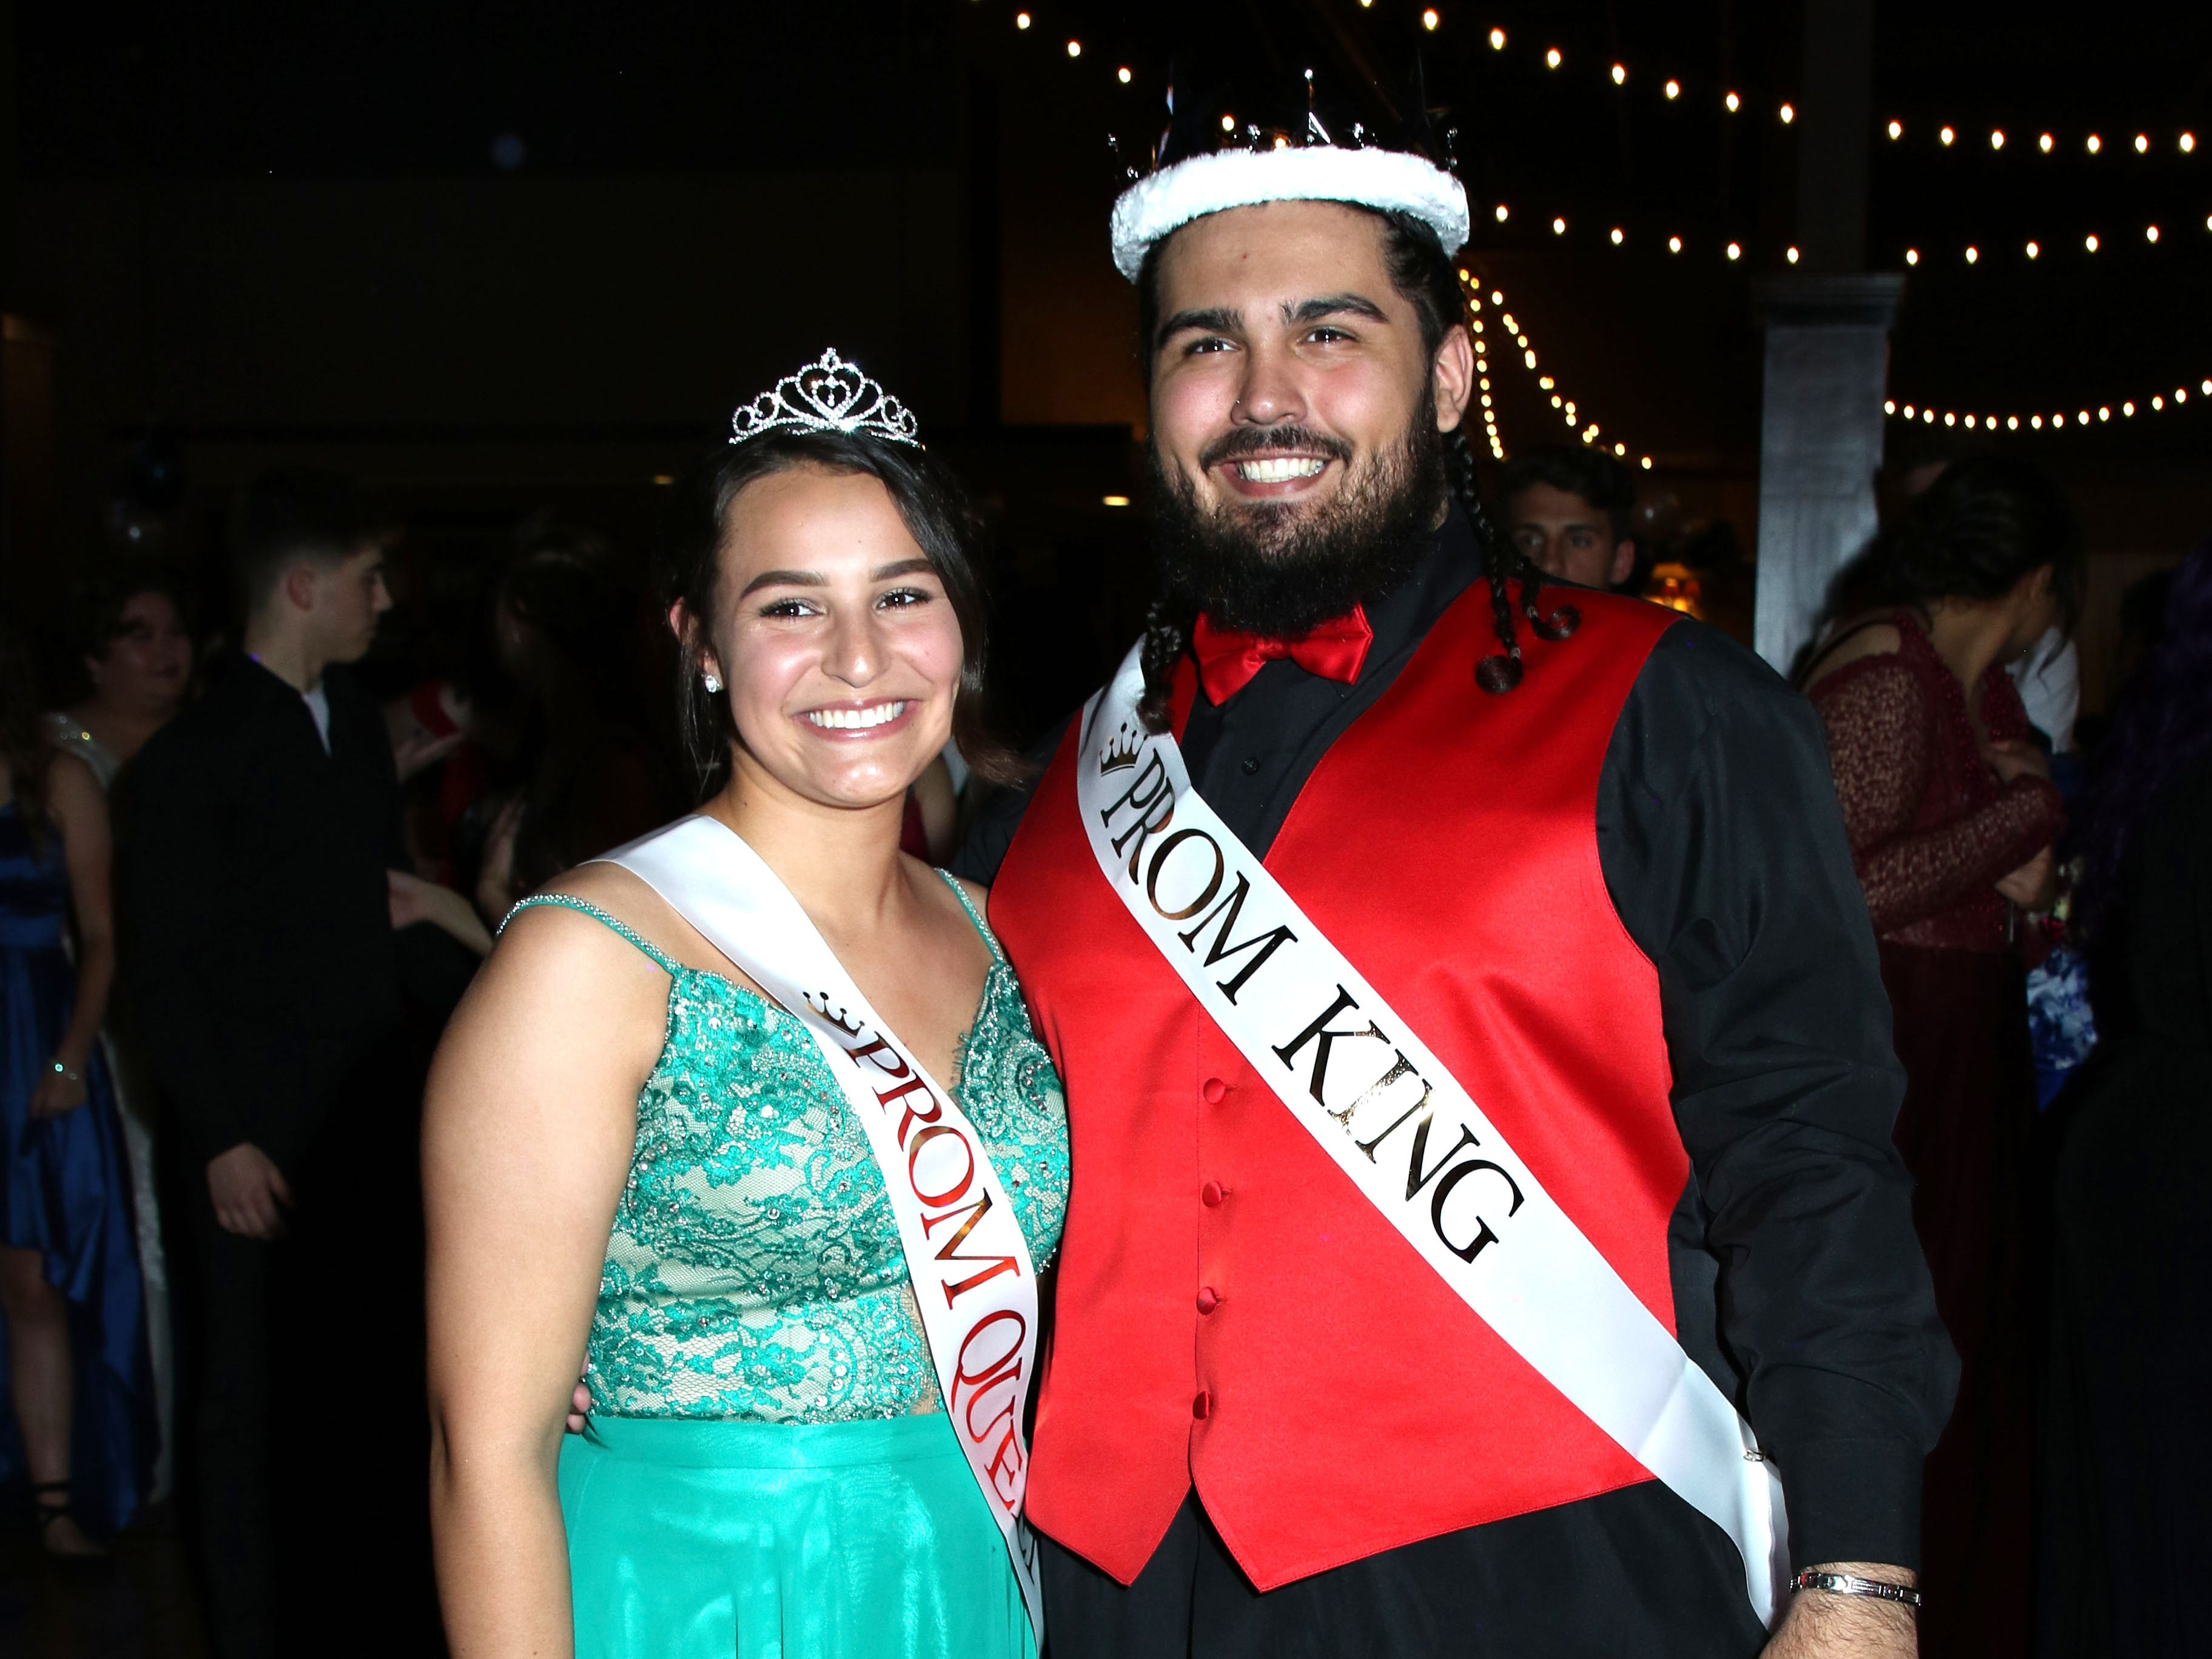 Queen Marisol Fick and King Reece Taylor. Port Clinton's 2019 Prom was held Saturday, April 27th at Lyman Harbor in Sandusky